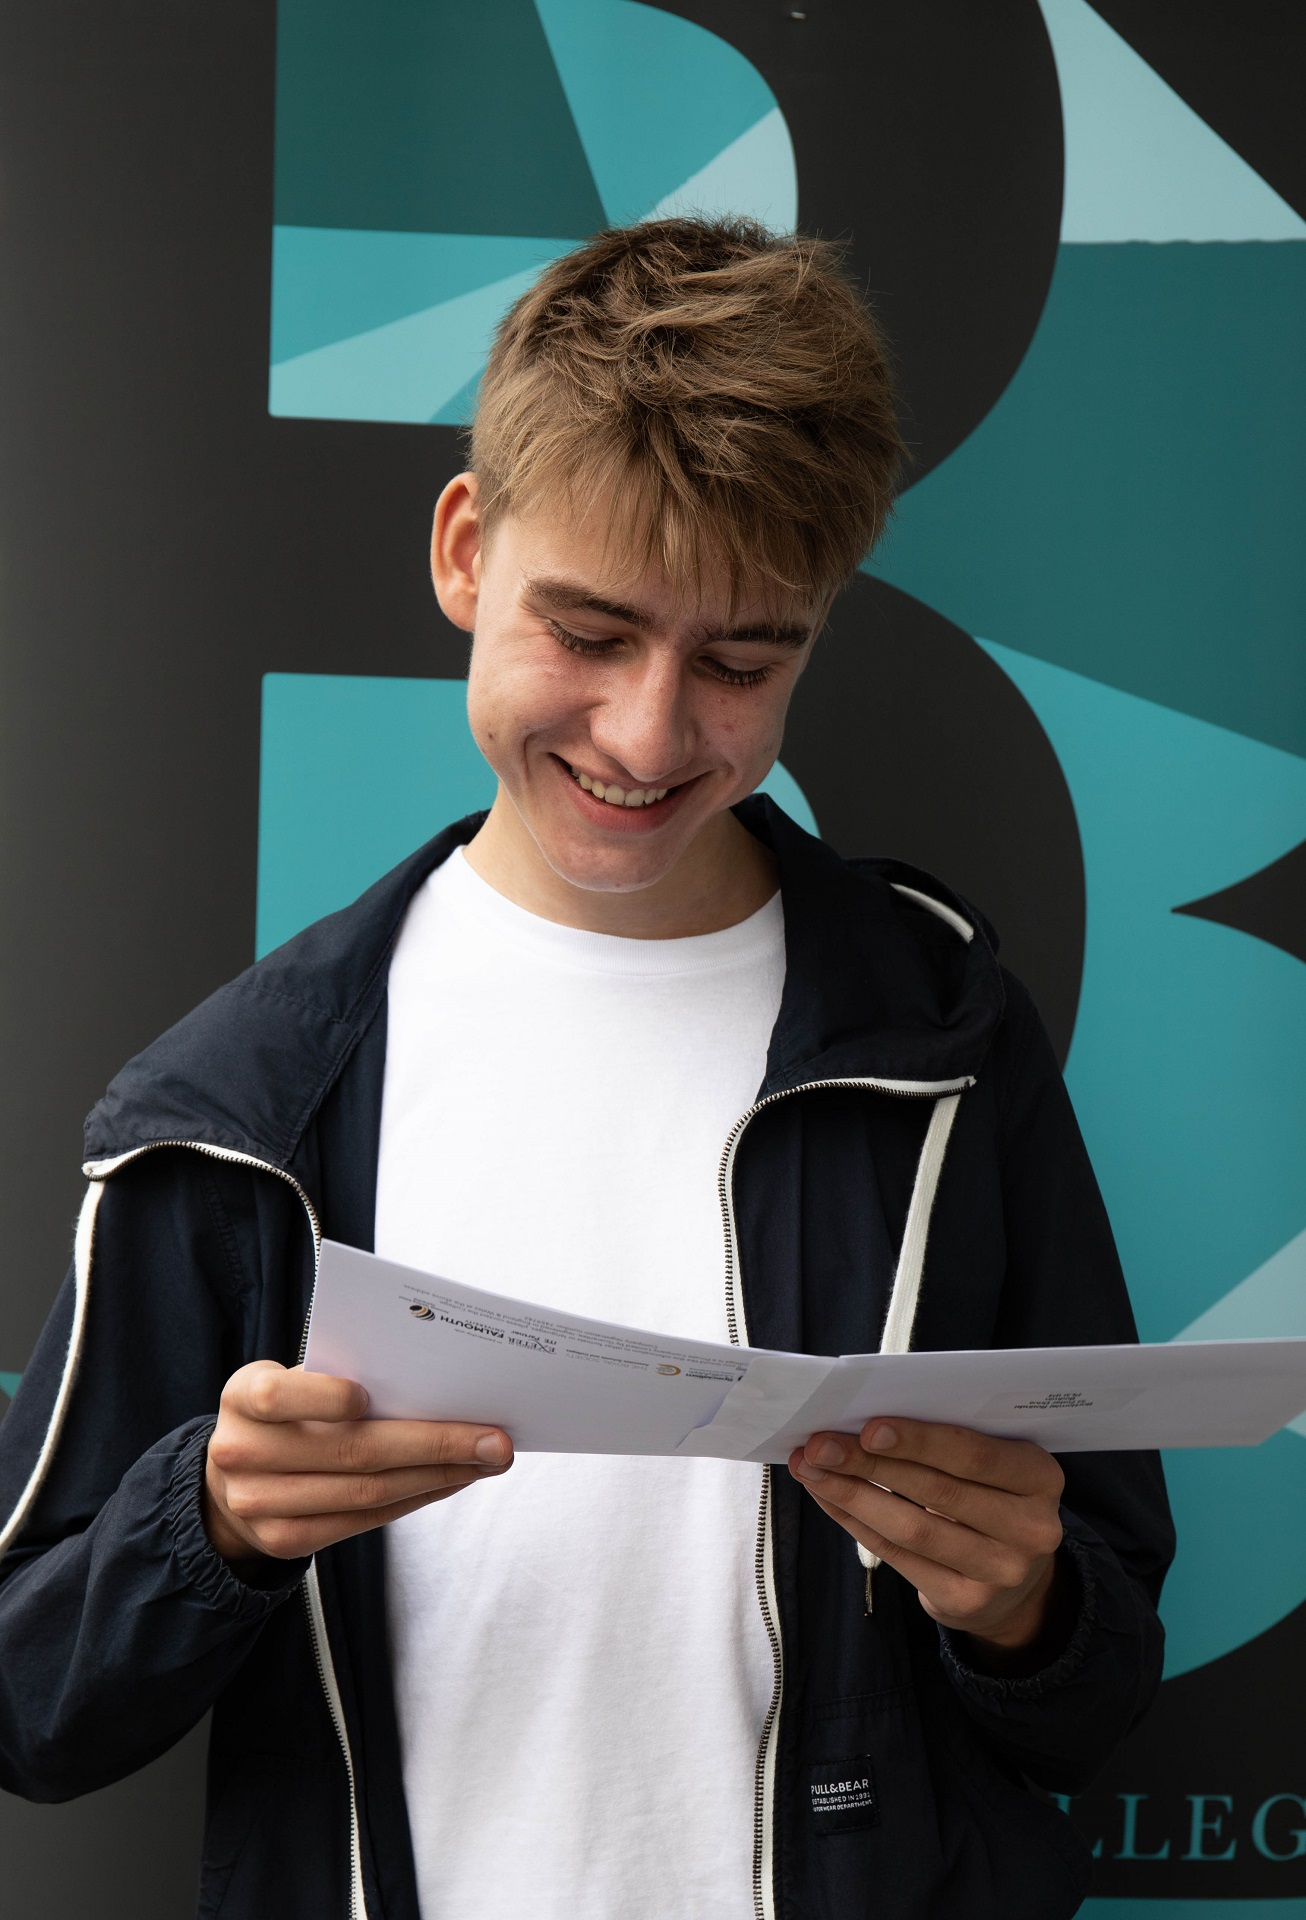 Bart Rosinki Achieved 3 Grade As In Biology, Chemistry And Maths Going On To Study Medicine At University College London.